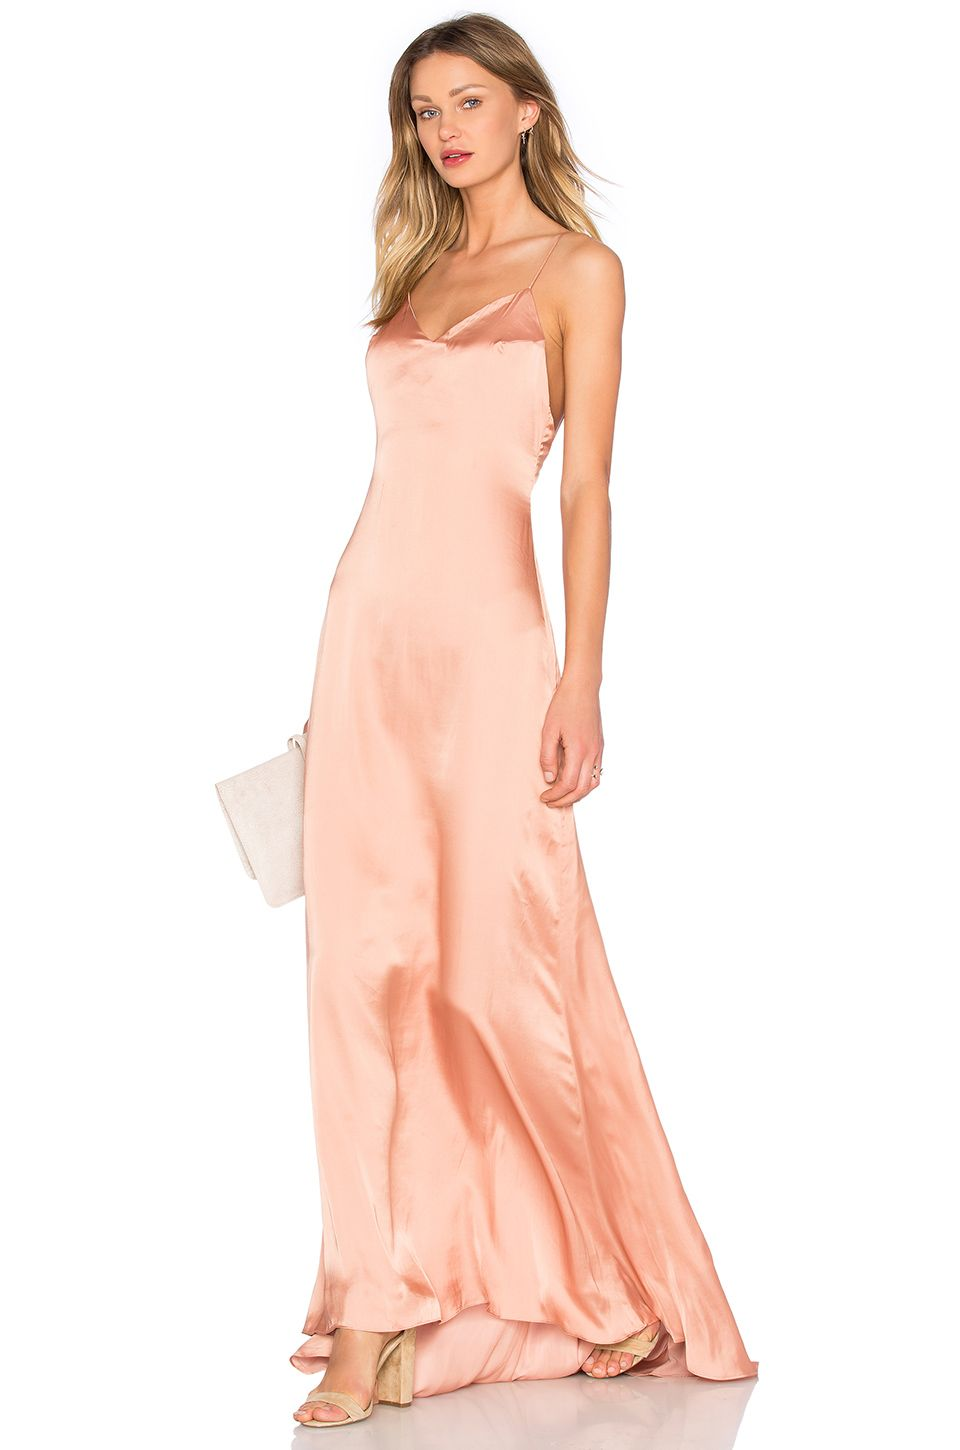 519f9109deb31 Lovers + Friends x REVOLVE The Slip Dress in Nude | Wants and needs ...